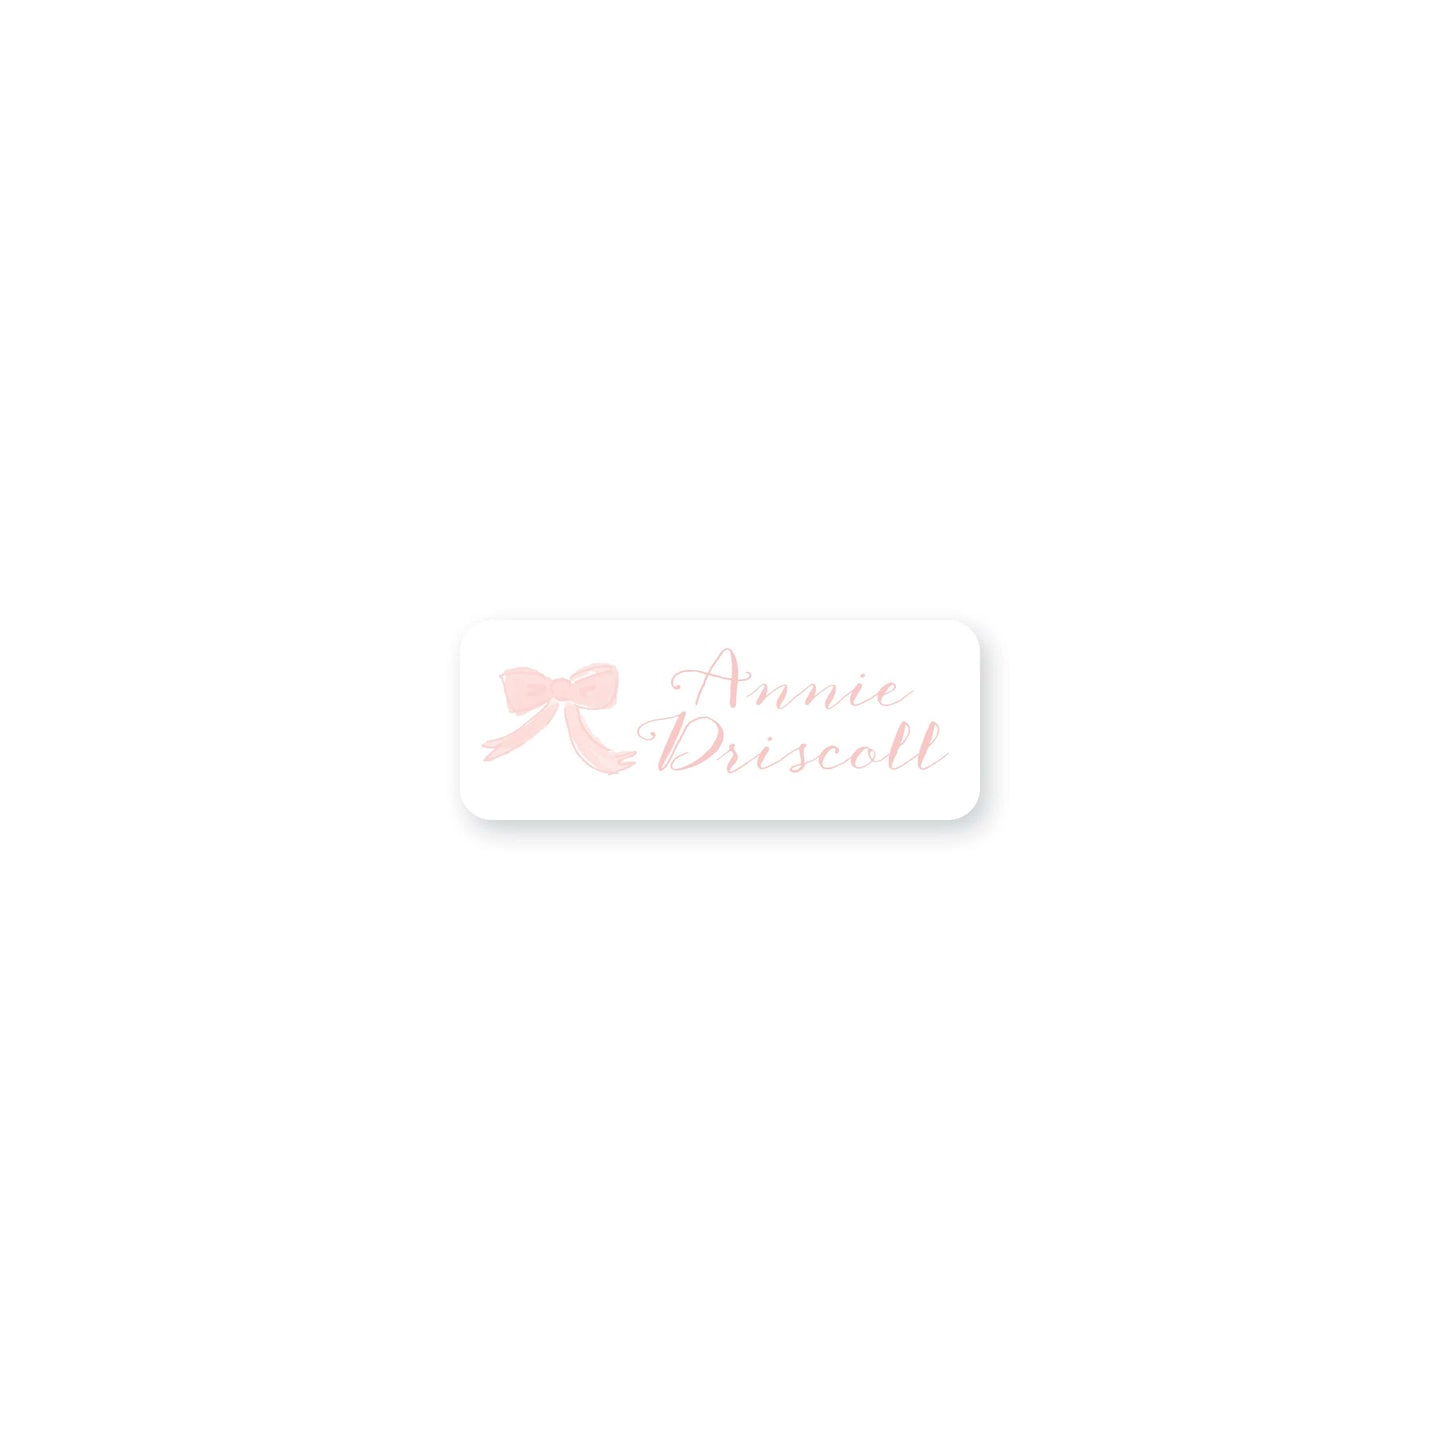 Weezie B. Designs | Watercolor Bow Permanent Sticker